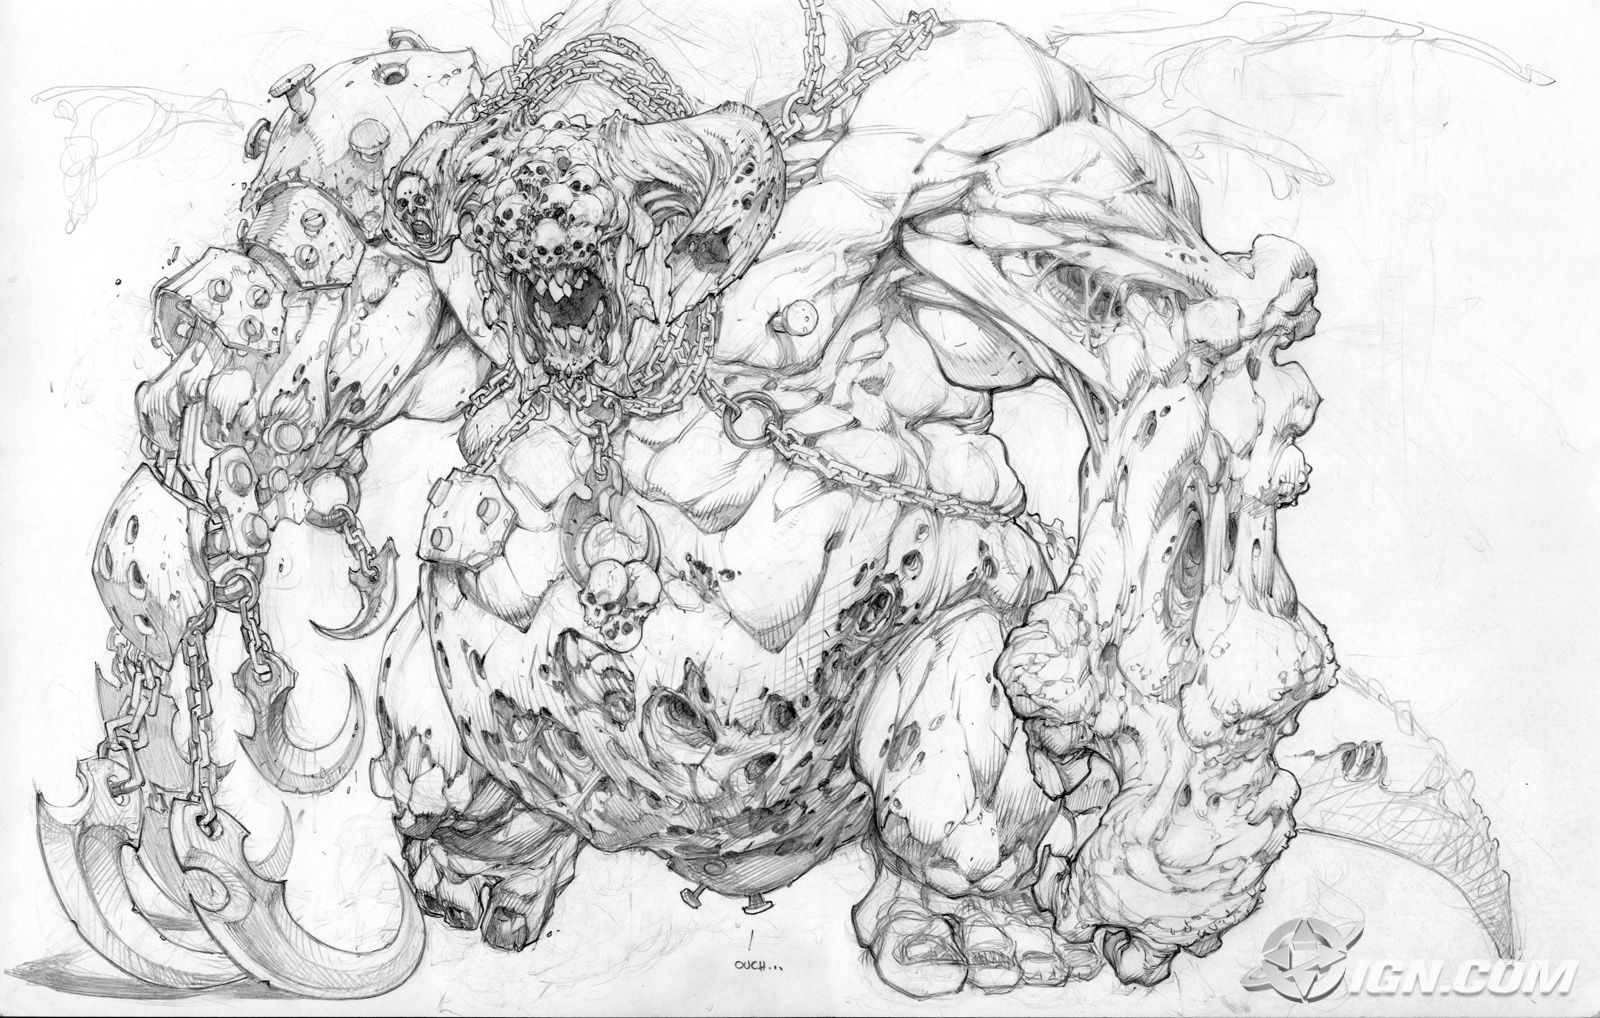 A Wolf Illustrations Blog Joe Madureira Sketchbook Joe Madureira Concept Art Characters Art